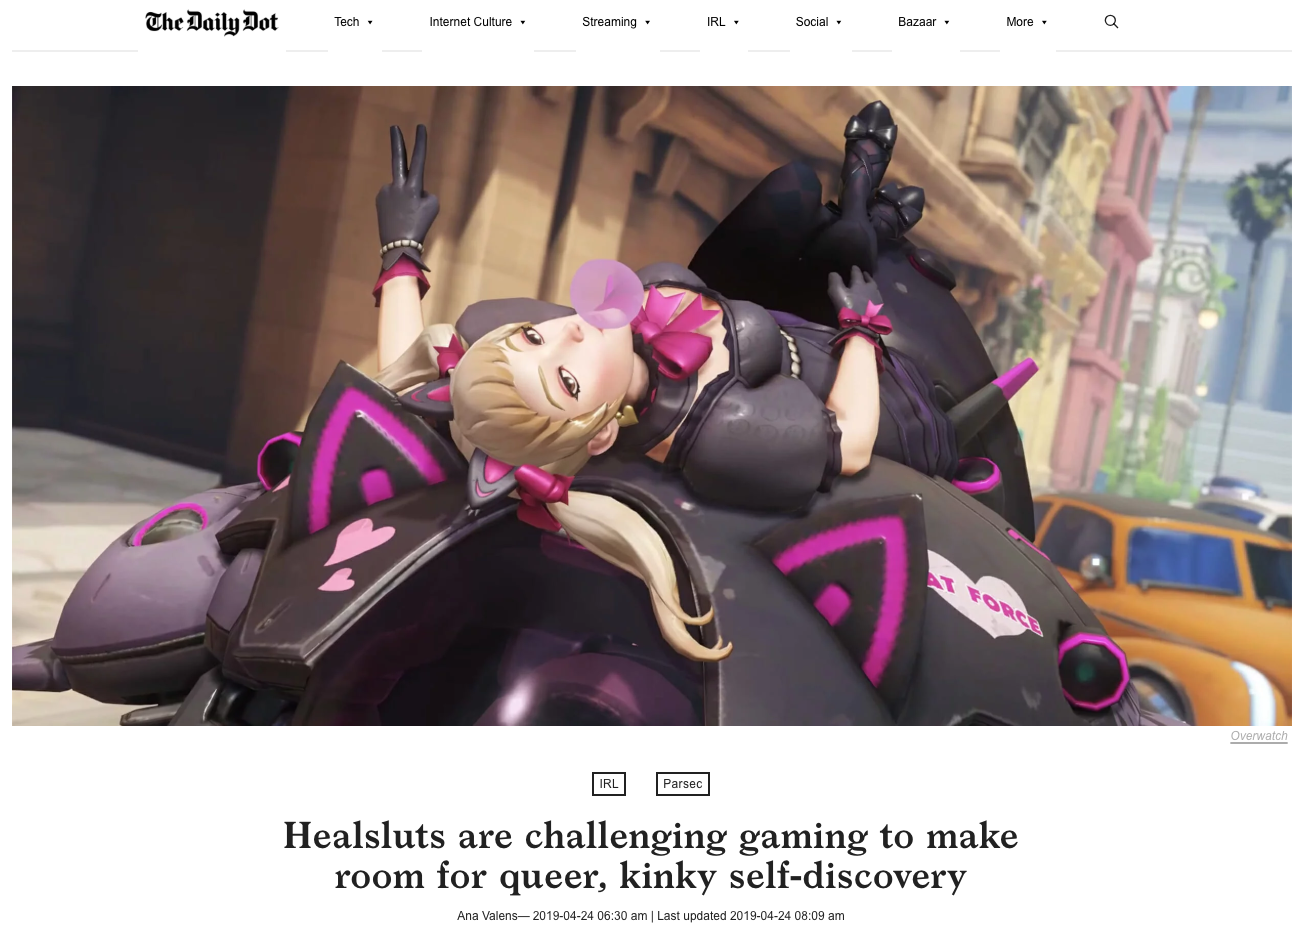 Recent Press: - Check out this great cover story for The Daily Dot by Ana Valens in which I was quoted discussing fandom, kinks and sexuality.